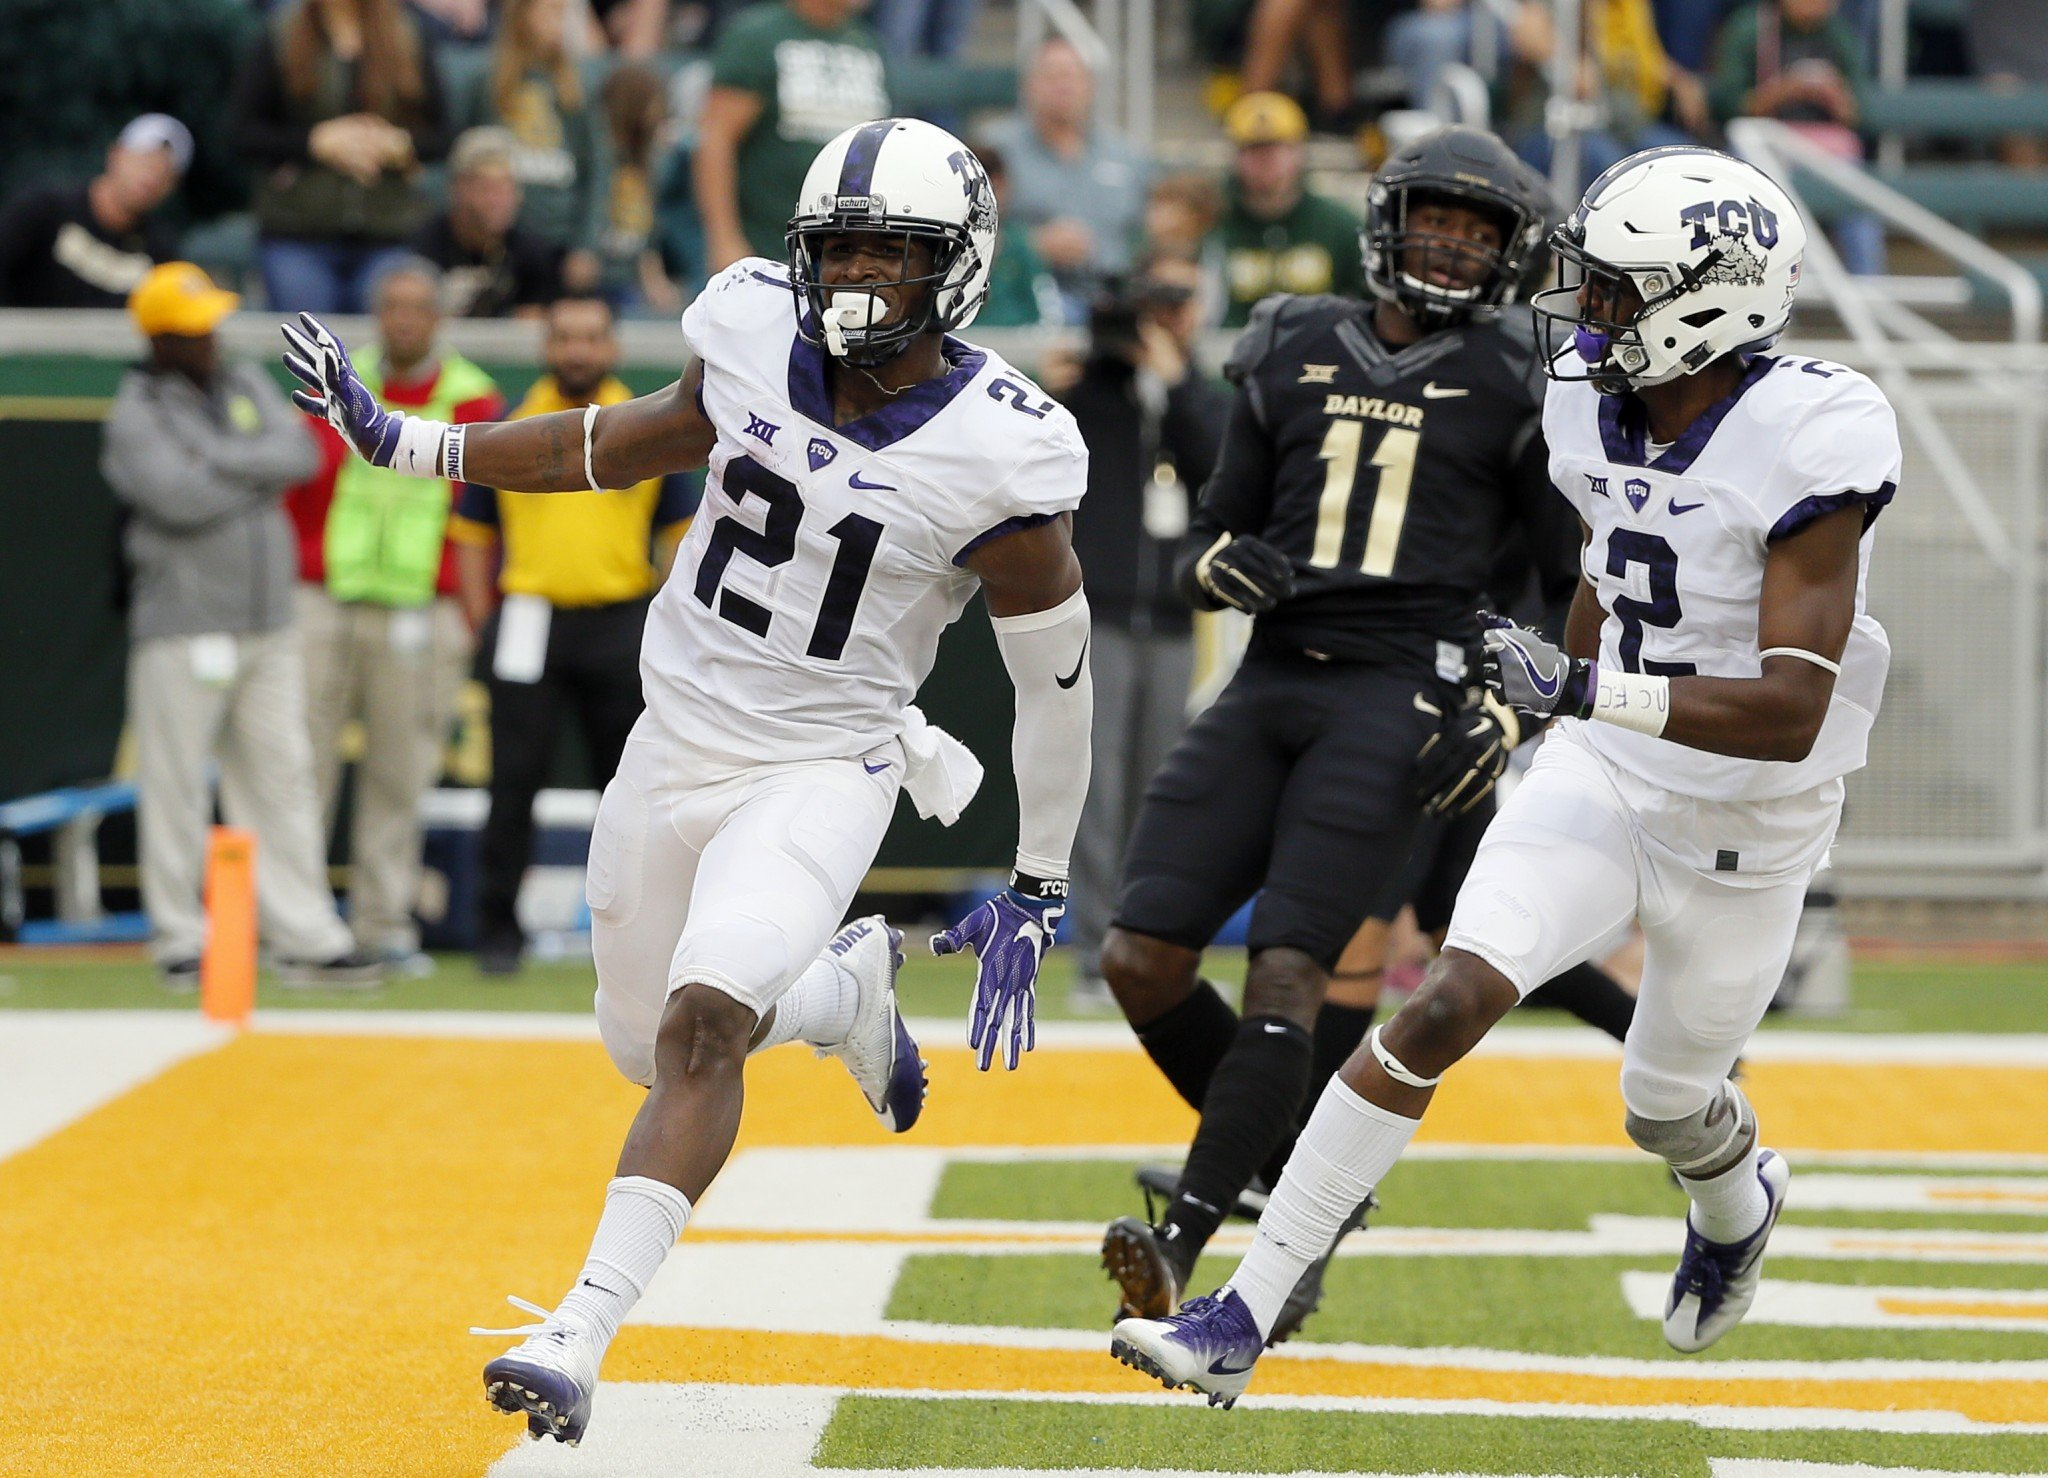 Kyle Hicks led TCU in rushing and receptions in 2016. (AP Photo/Tony Gutierrez)